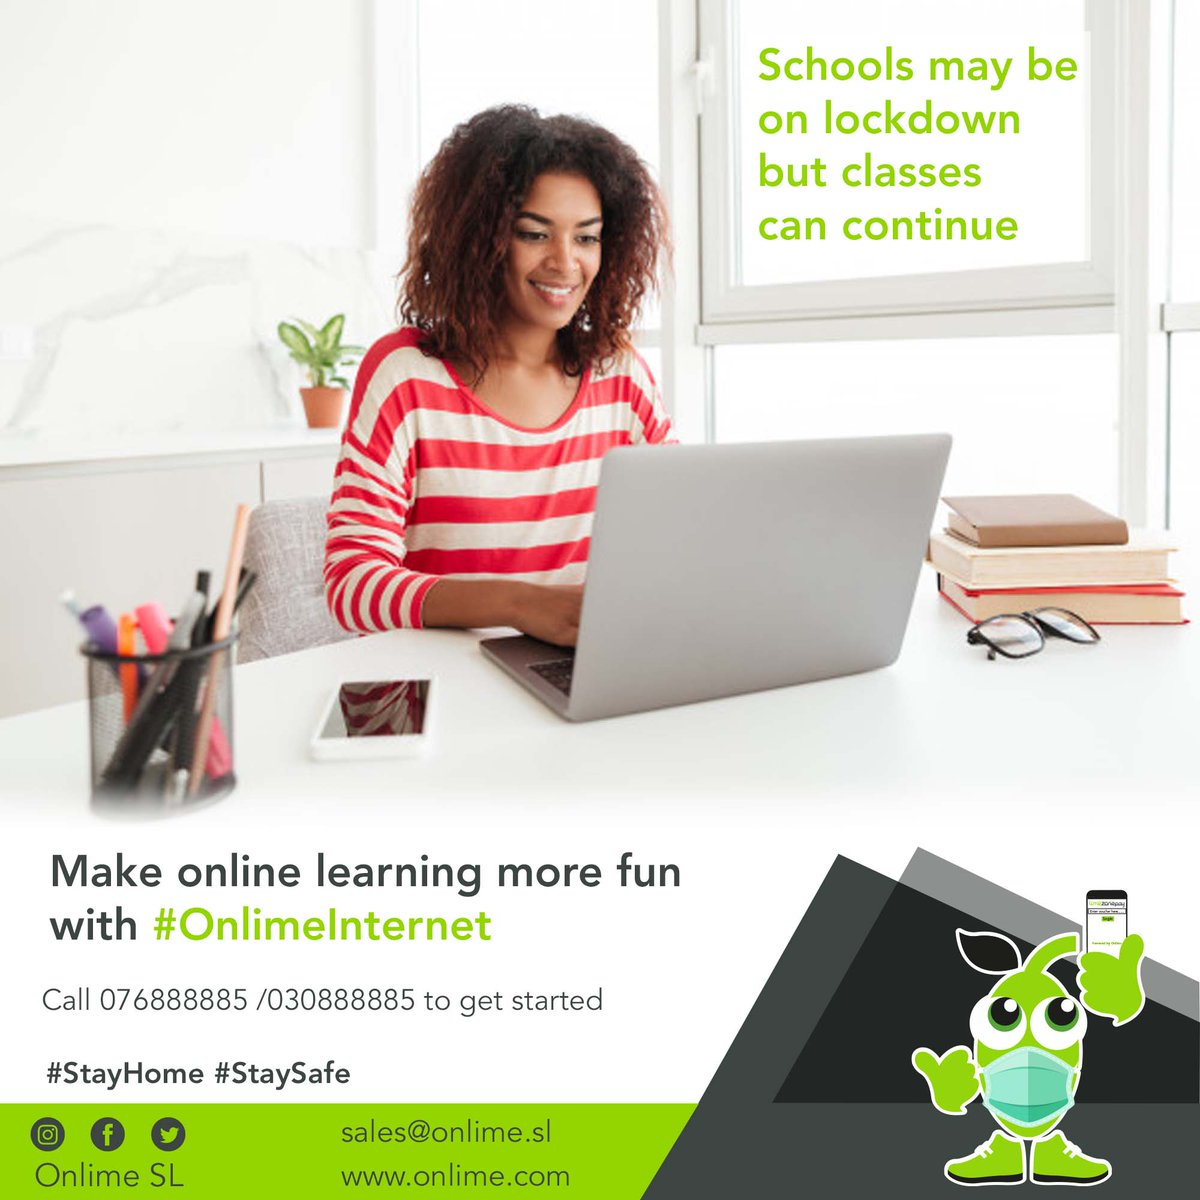 Make online learning more fun with #OnlimeInternet Call 076888885 /030888885 to get started. #SierraLeone #Freetown #SaloneTwitter https://t.co/ahjl7AgbEx